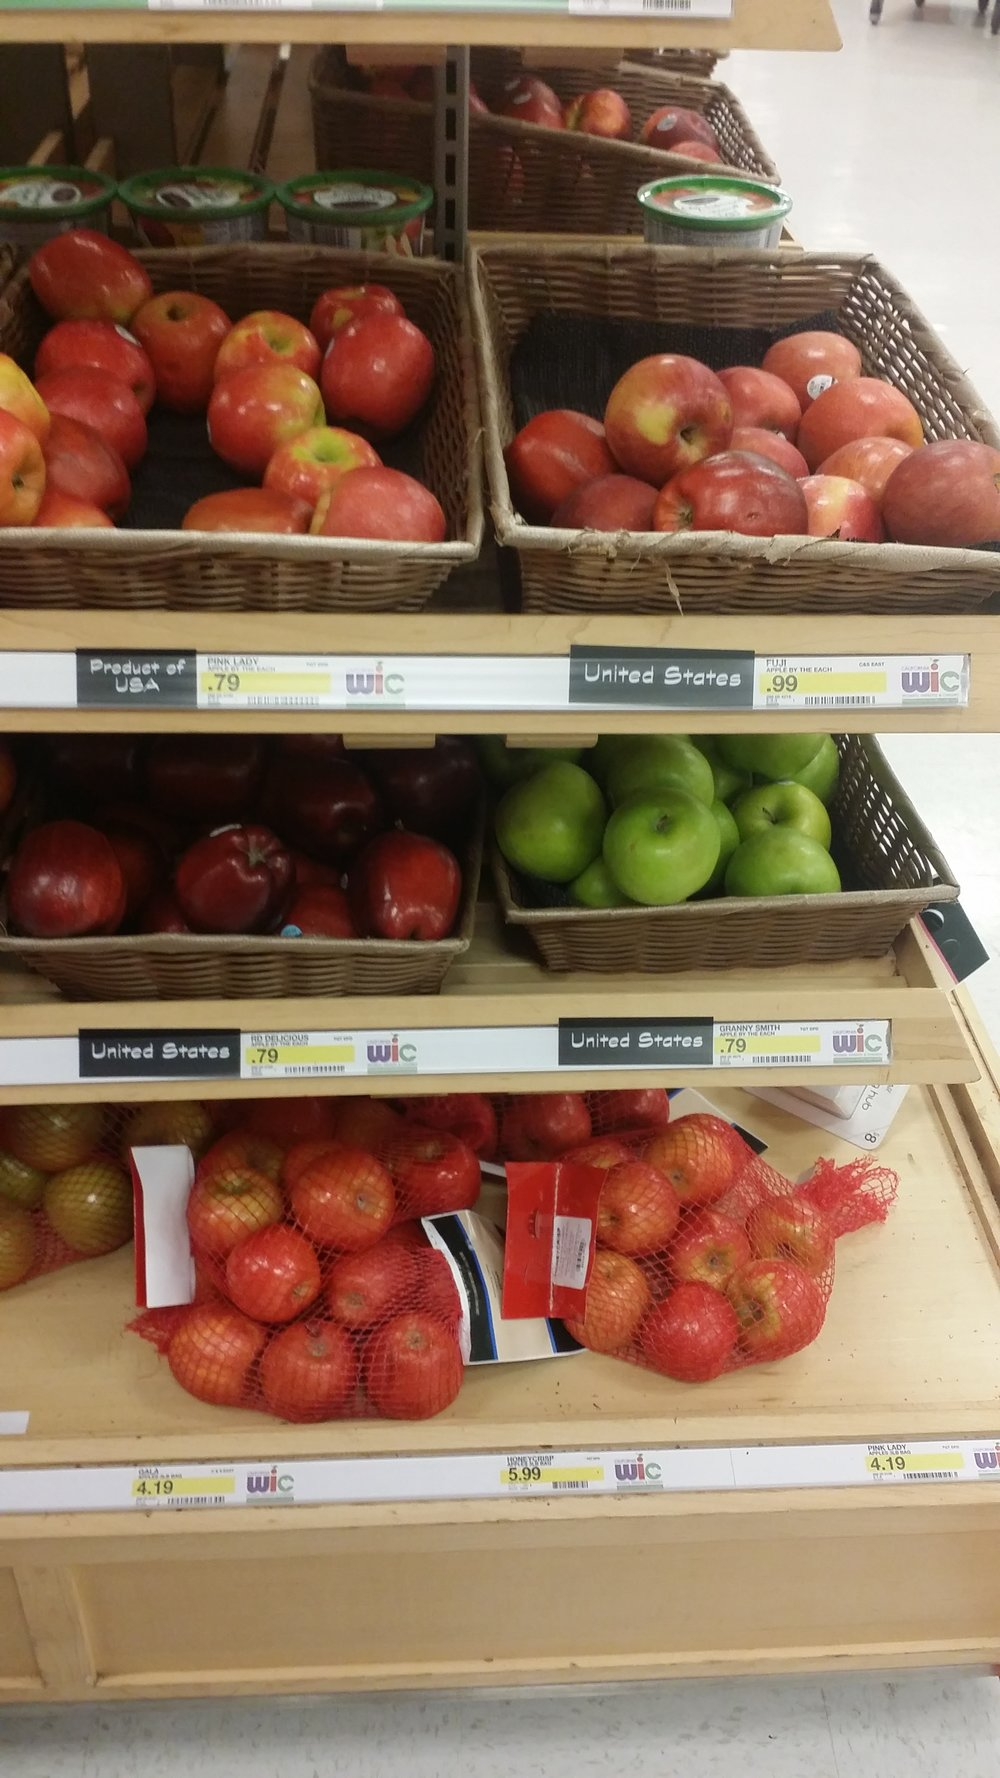 Target had a decent selection of apples.